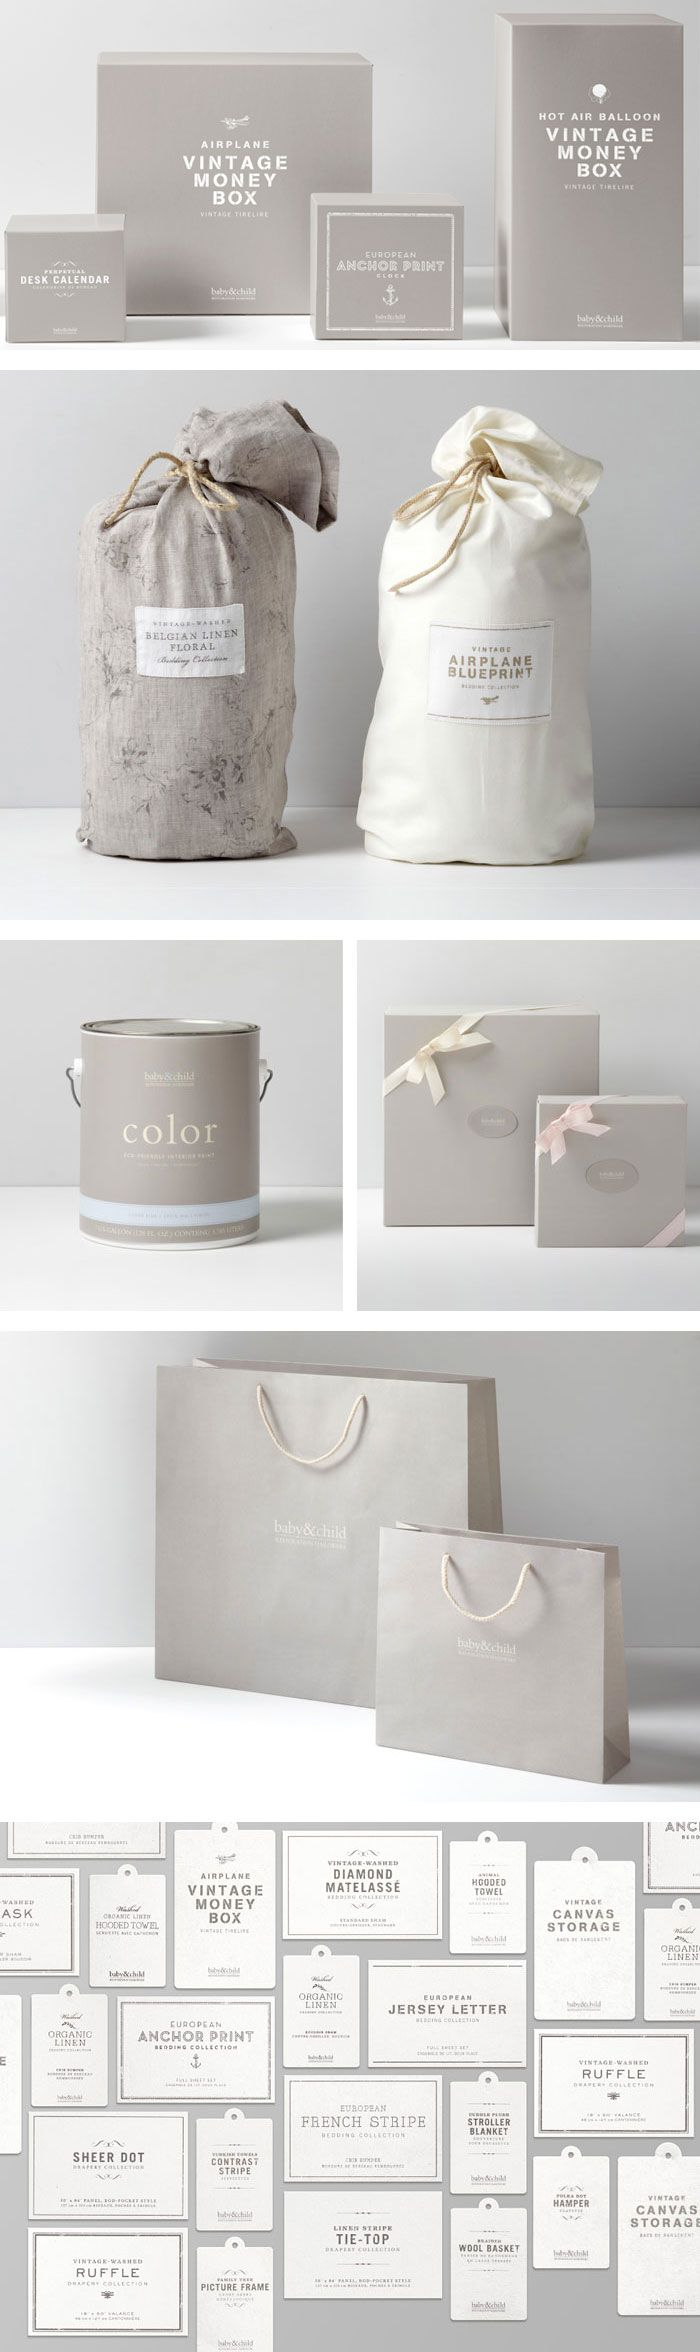 Restoration Hardware Baby & Child. #identity #branding #packagedesign | Very similar to my design.